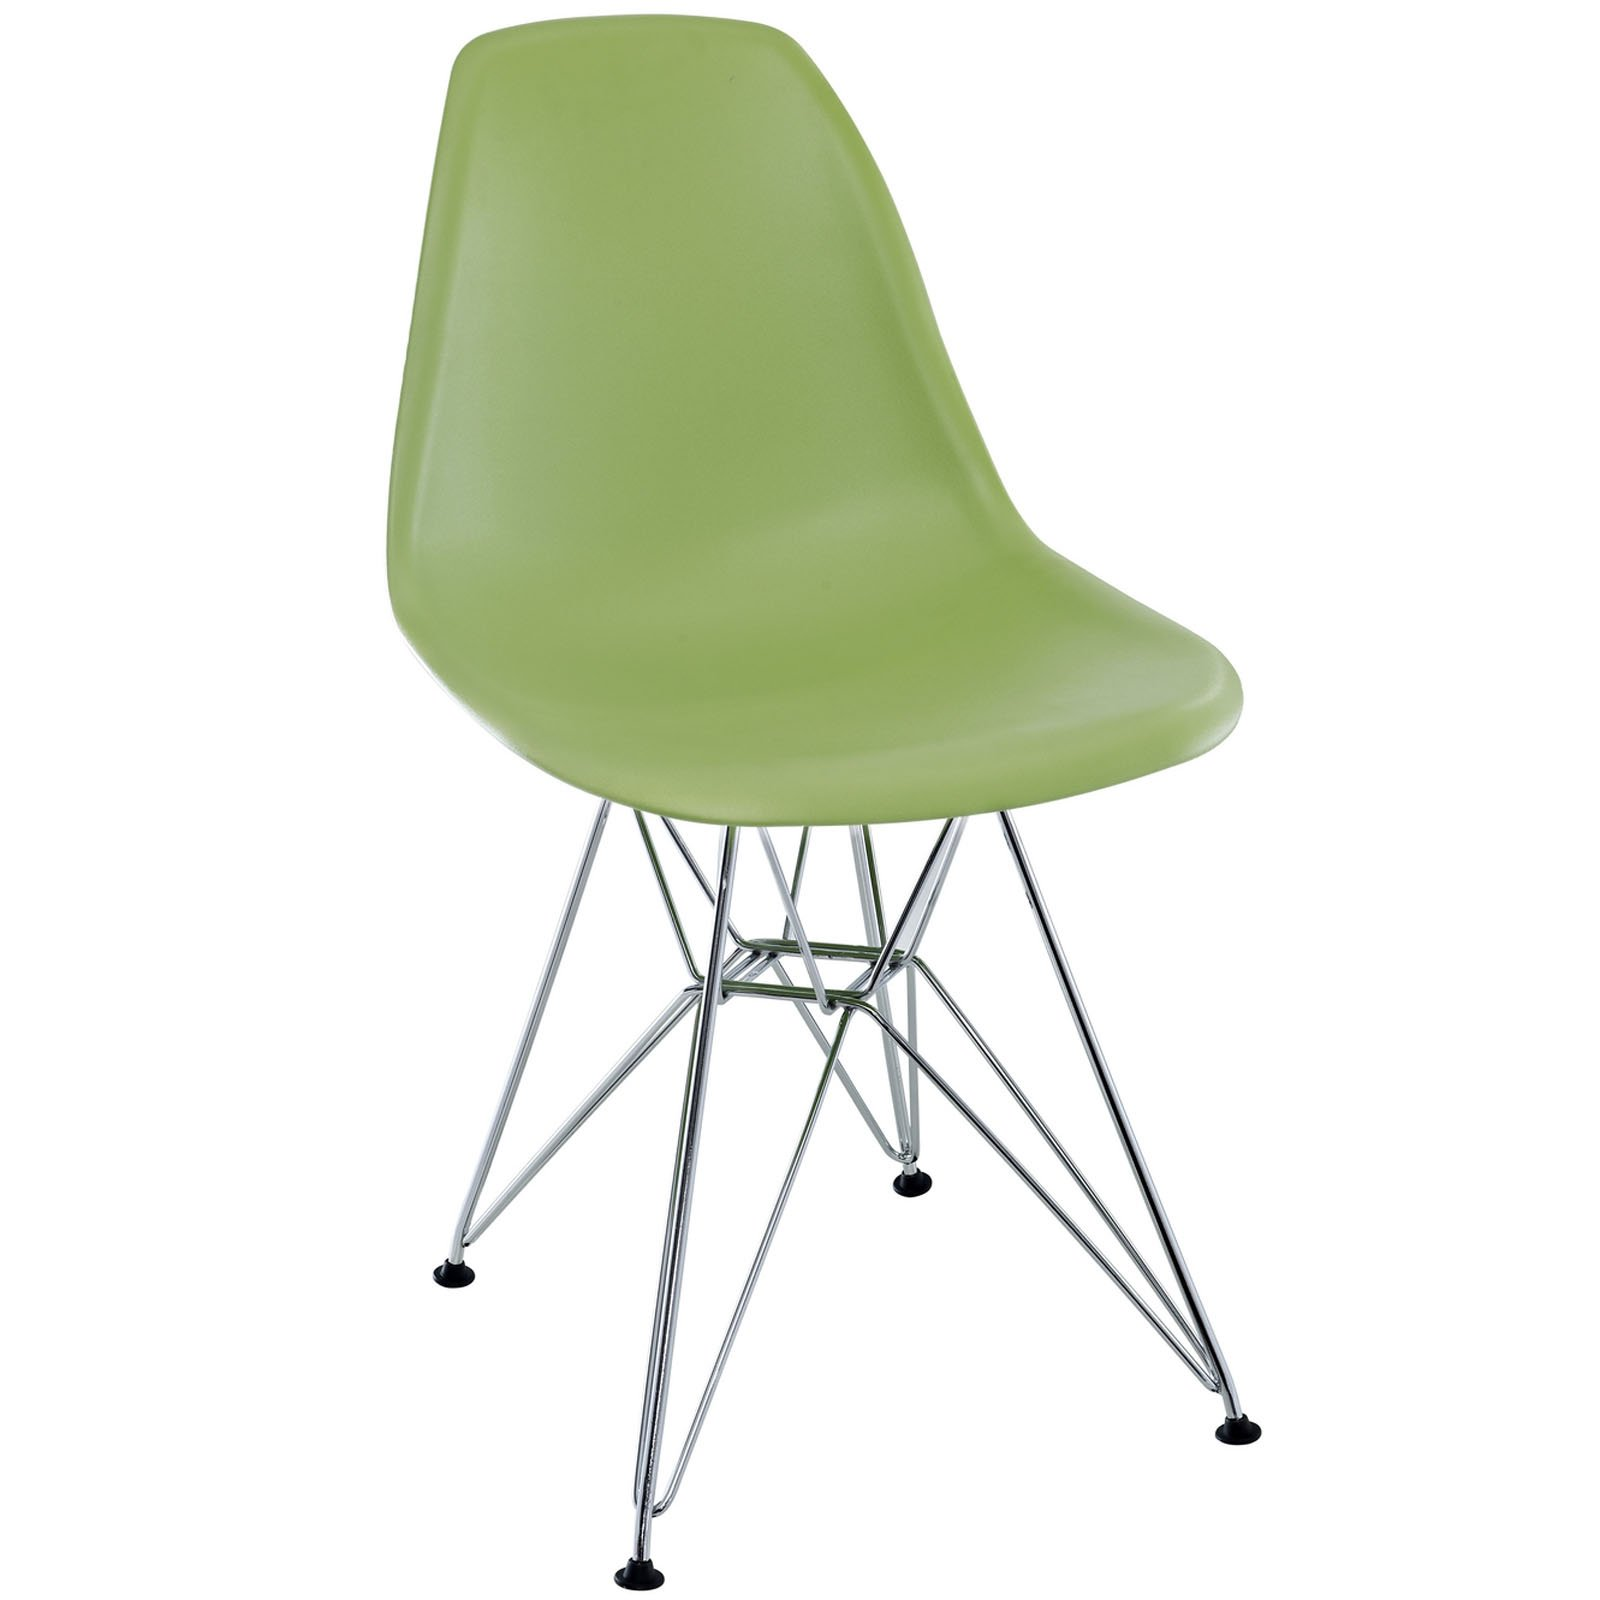 Modway Paris Mid-Century Modern Side Chair with Steel Metal Base in Green